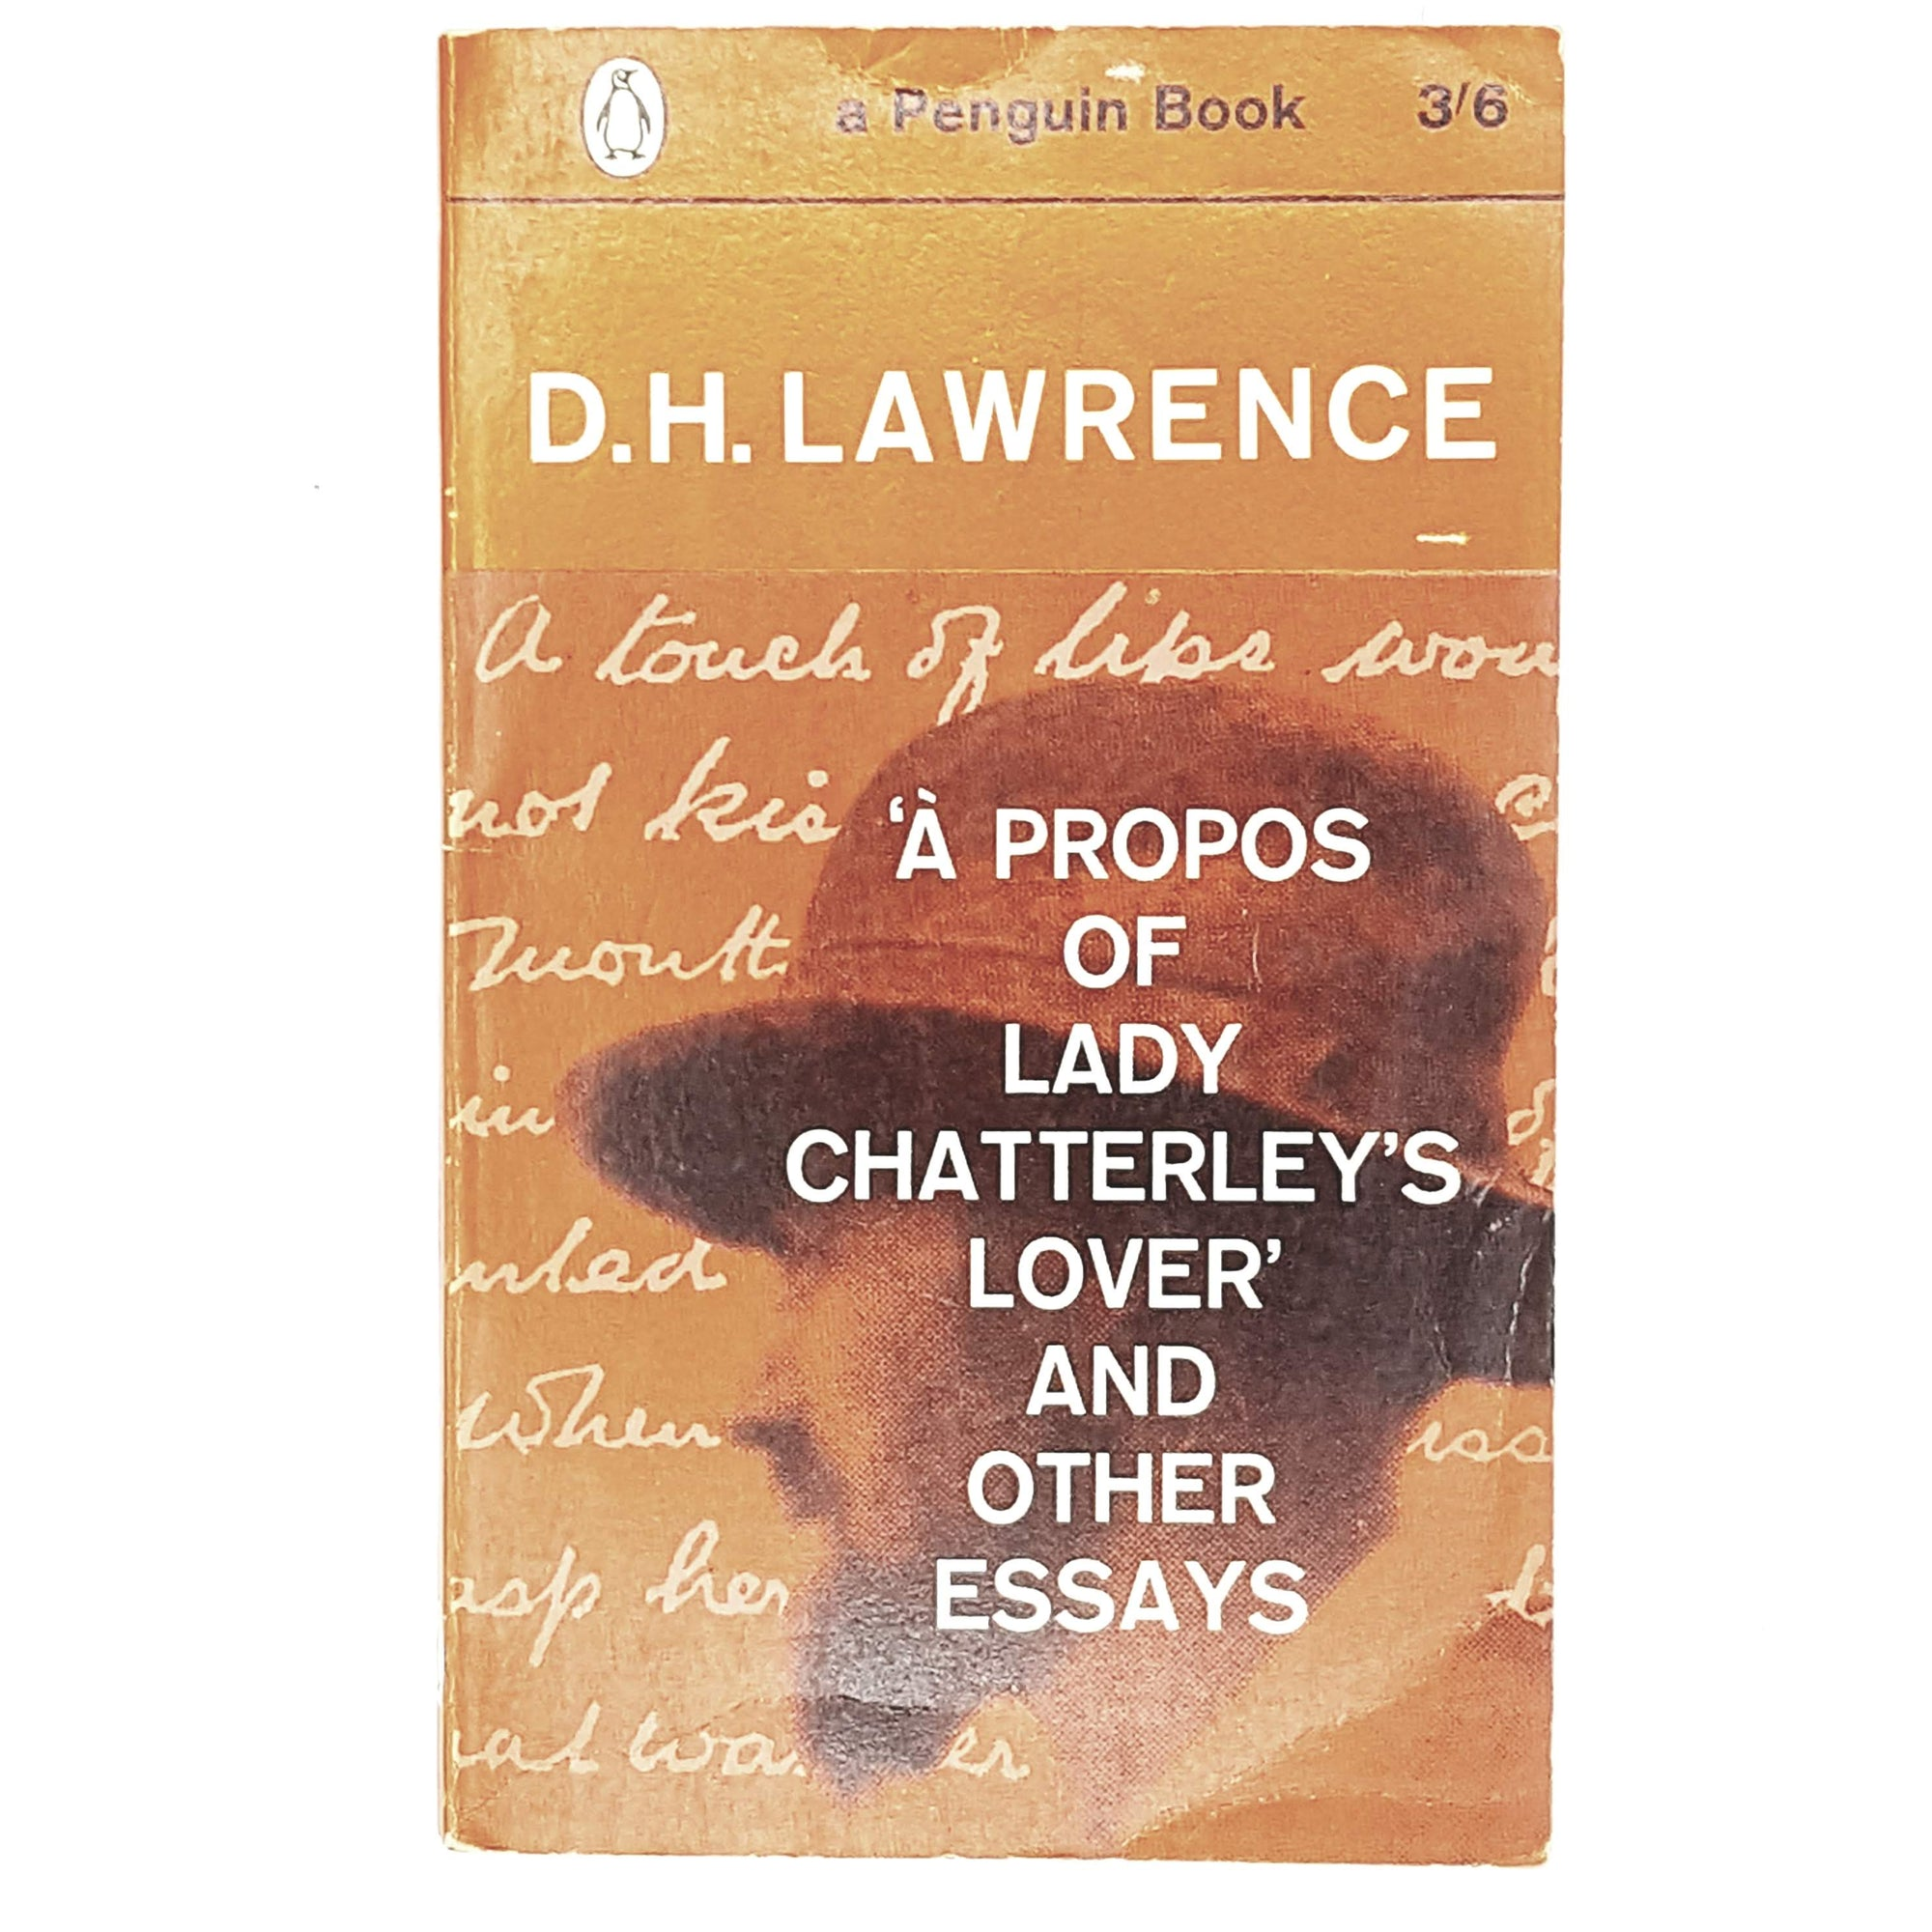 D. H. Lawrence's À Propos of Lady Chatterley's Lover and Other Essays 1967